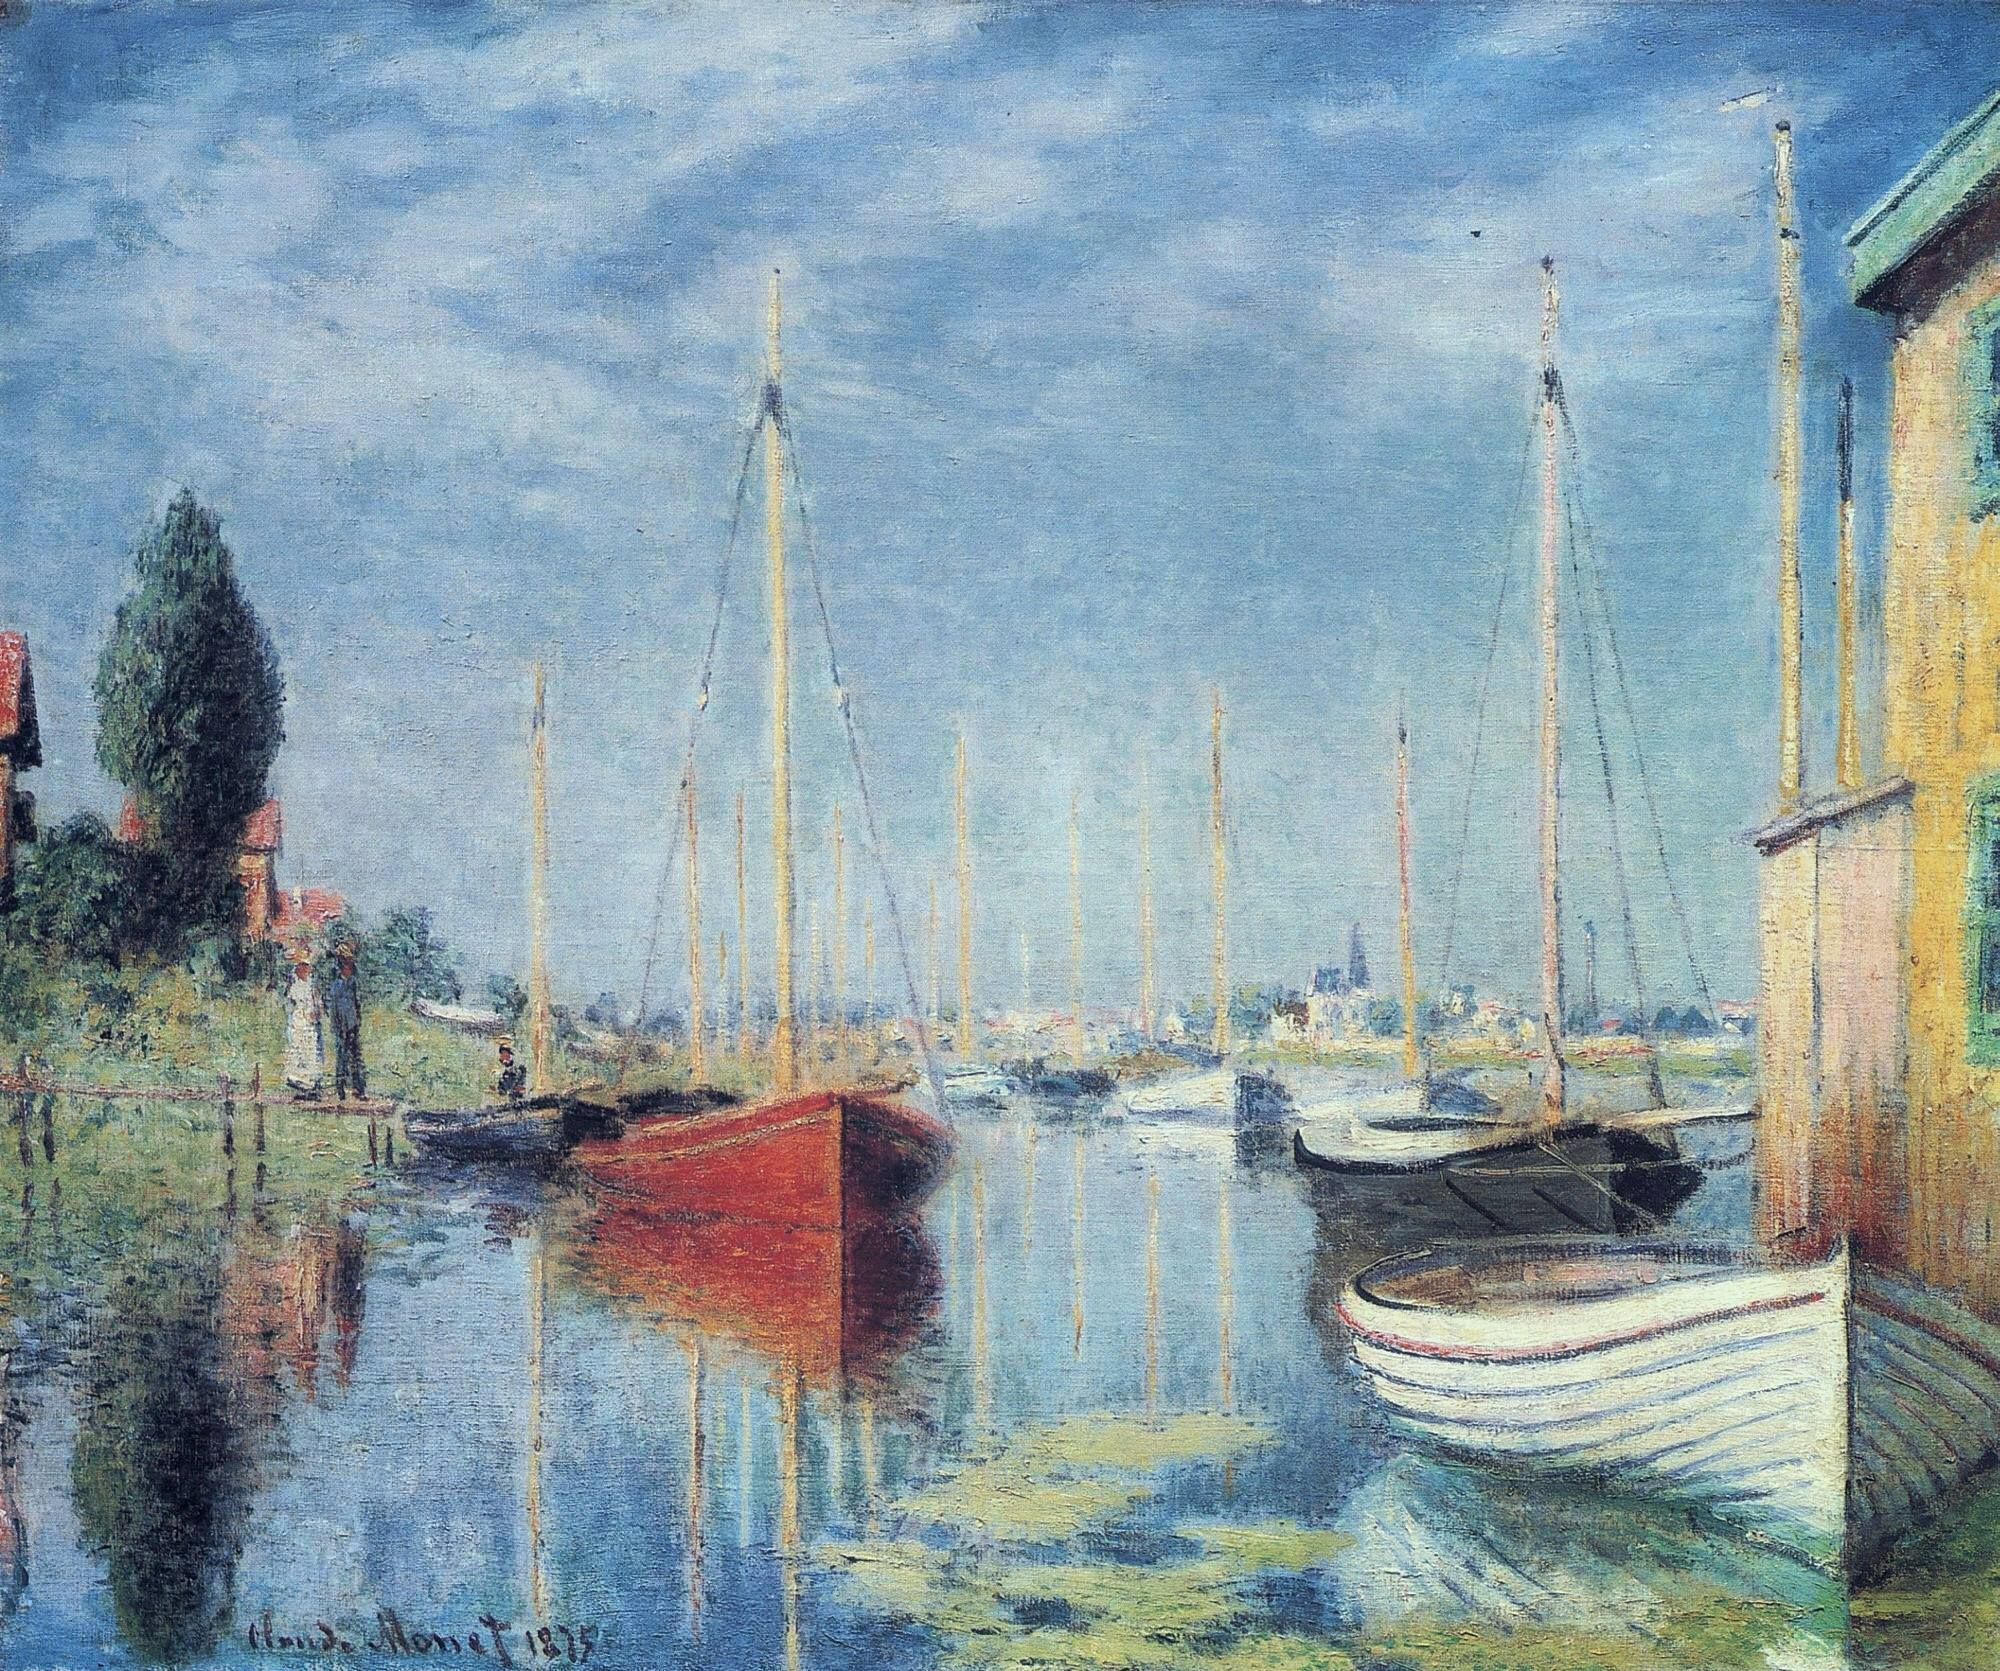 Claude Monet Argenteuil Yachts 1875 Monet Art Claude Monet Art Claude Monet Paintings